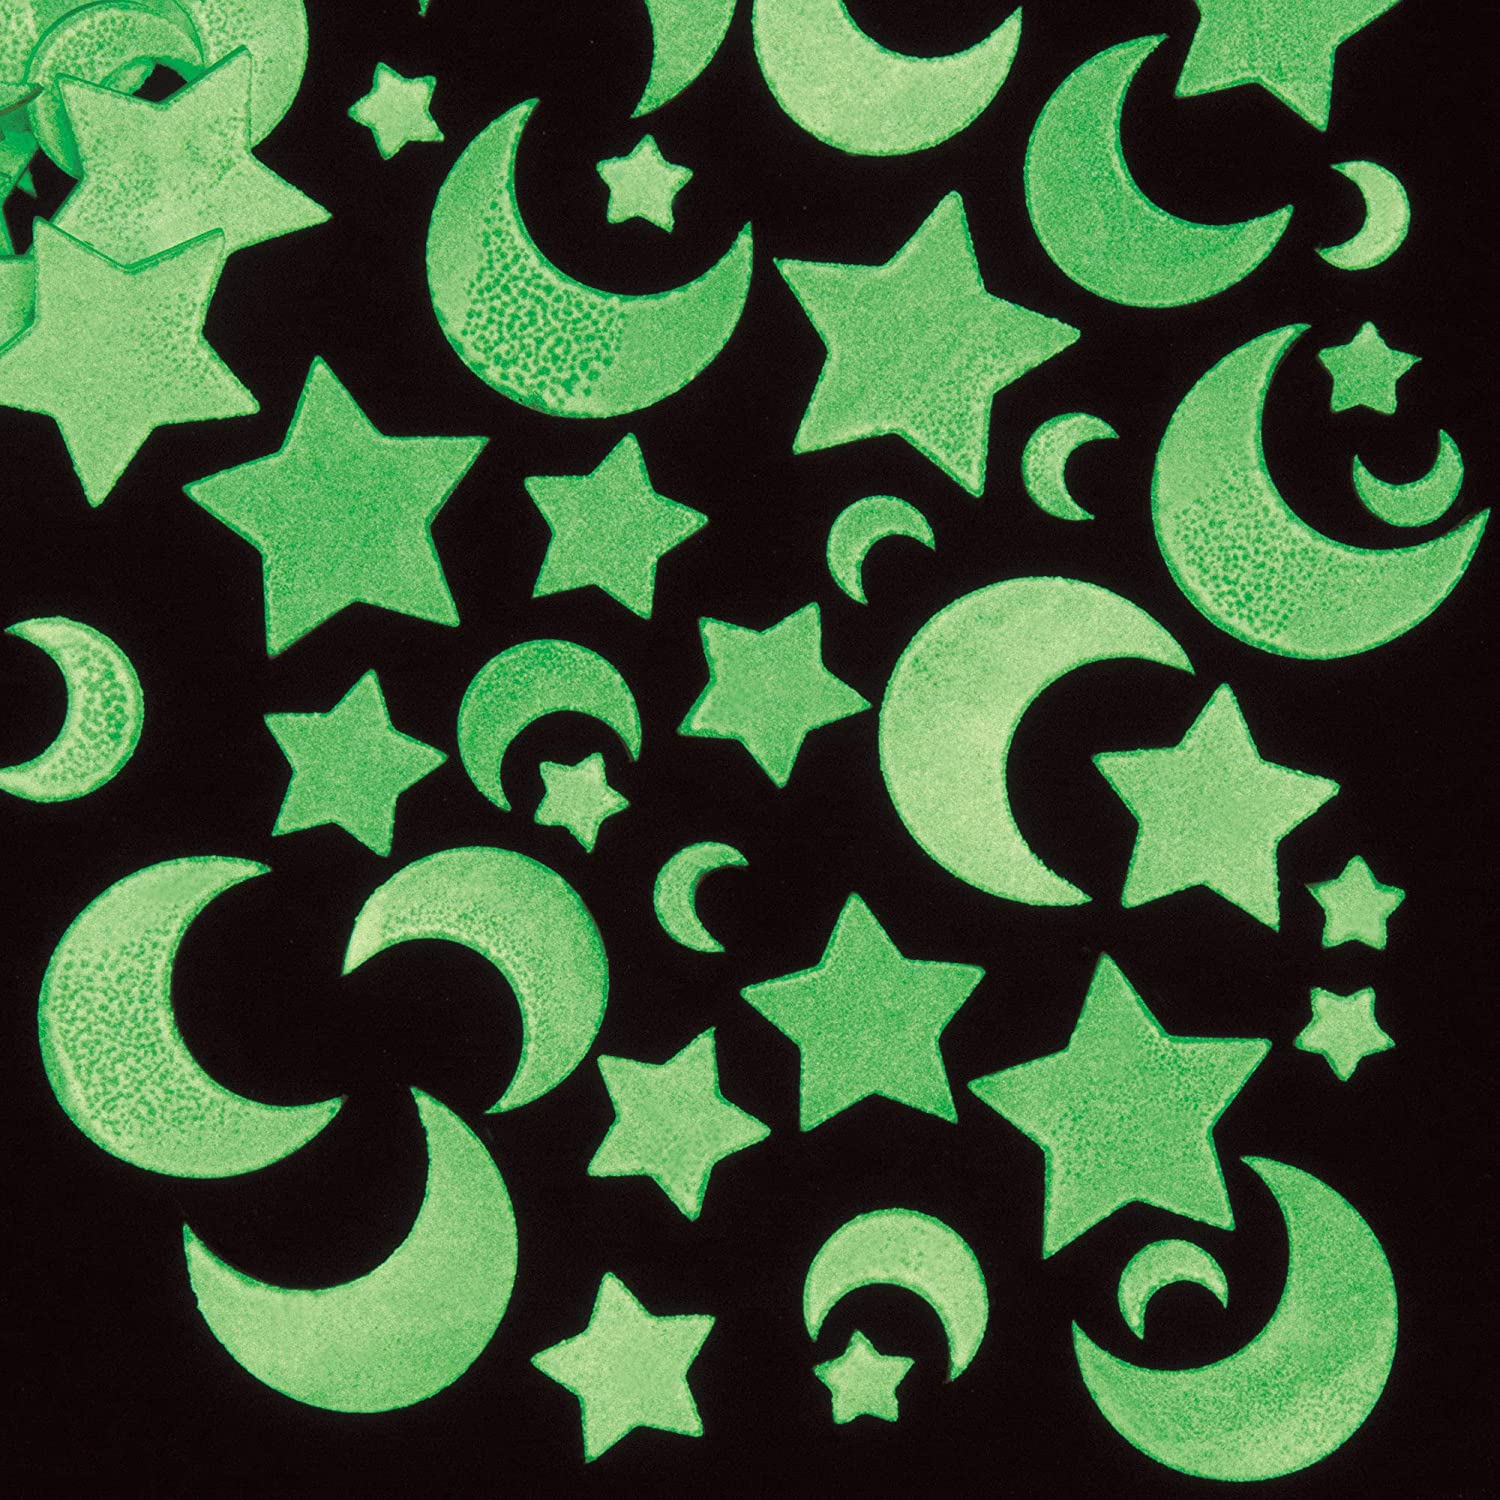 Baker Ross EF456 Moon Star Stickers - 120 Courier shipping free shipping Glow in Beauty products of Pack The